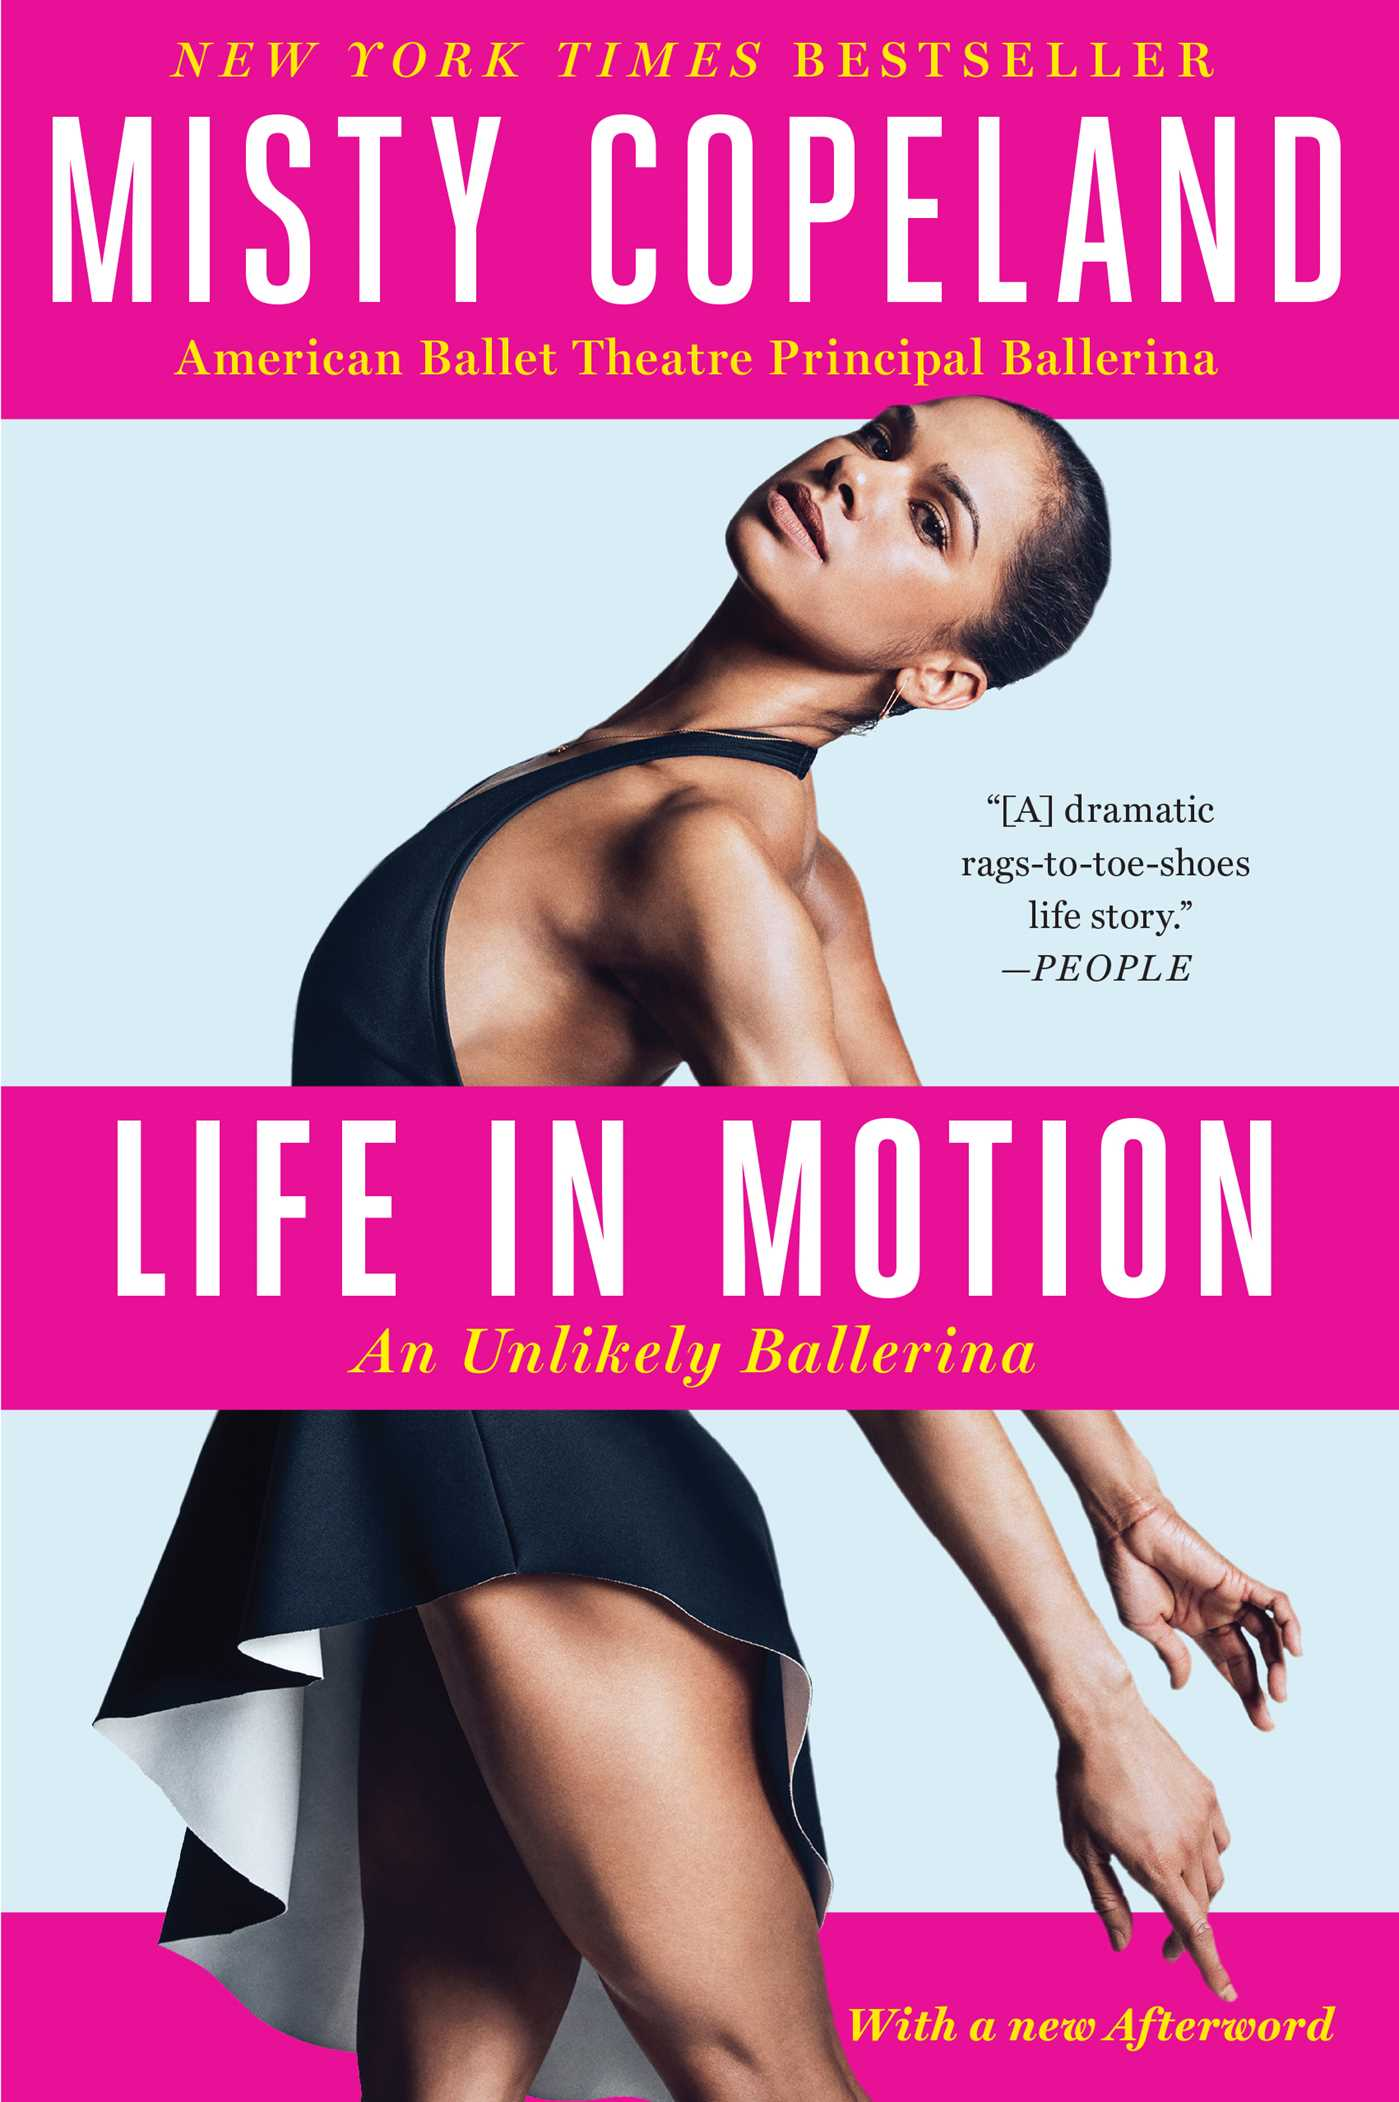 Life in motion 9781476737980 hr